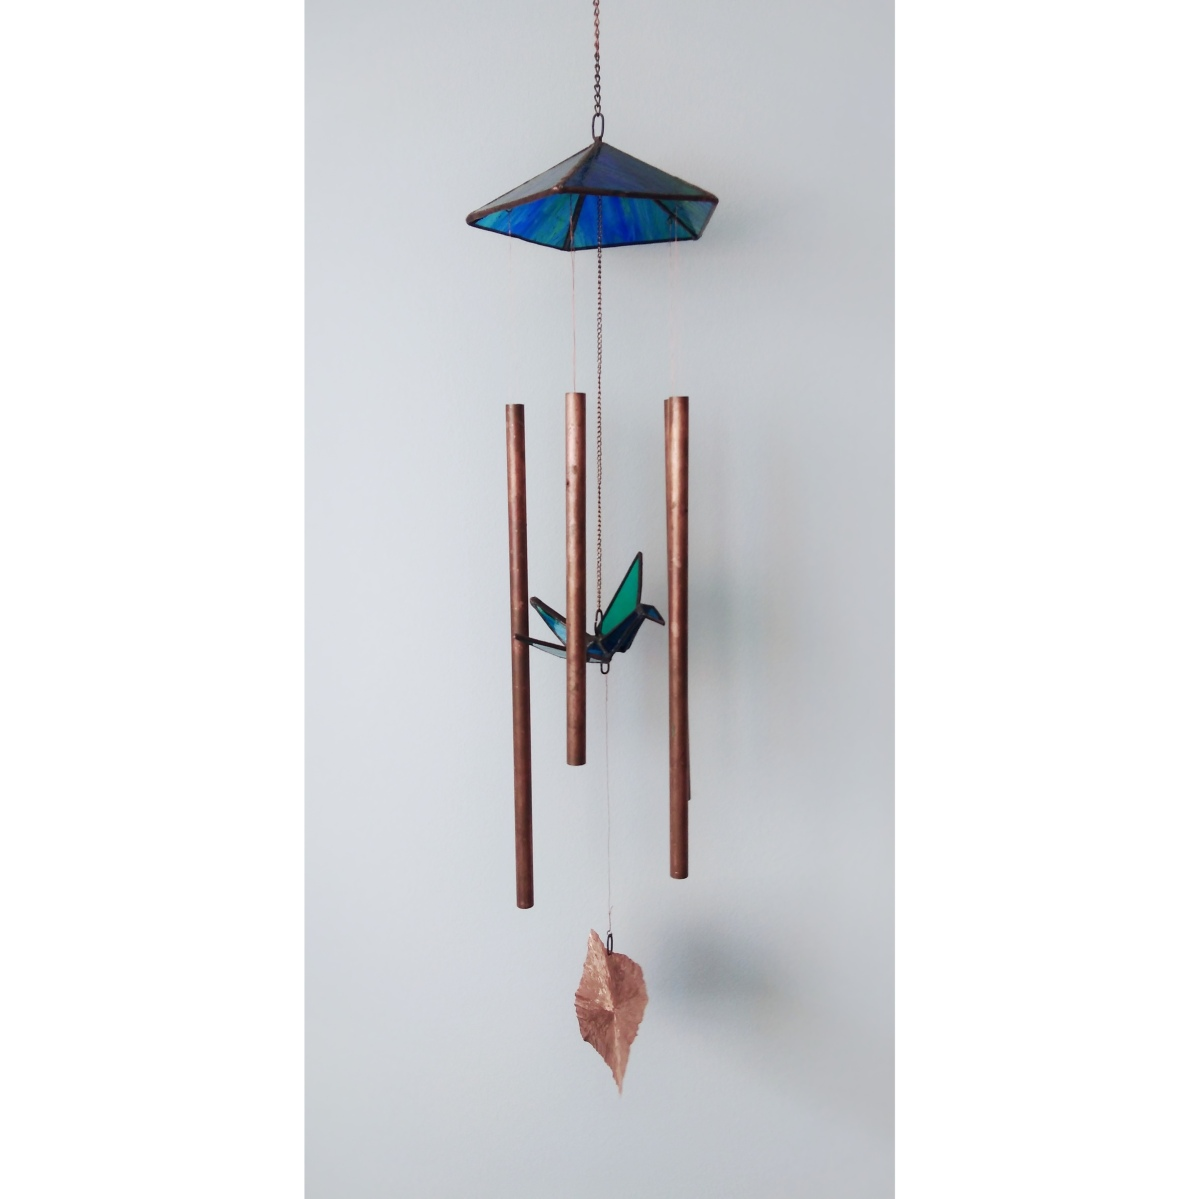 Åsa Maria Hermansson - Glass and metal art - Wind chime